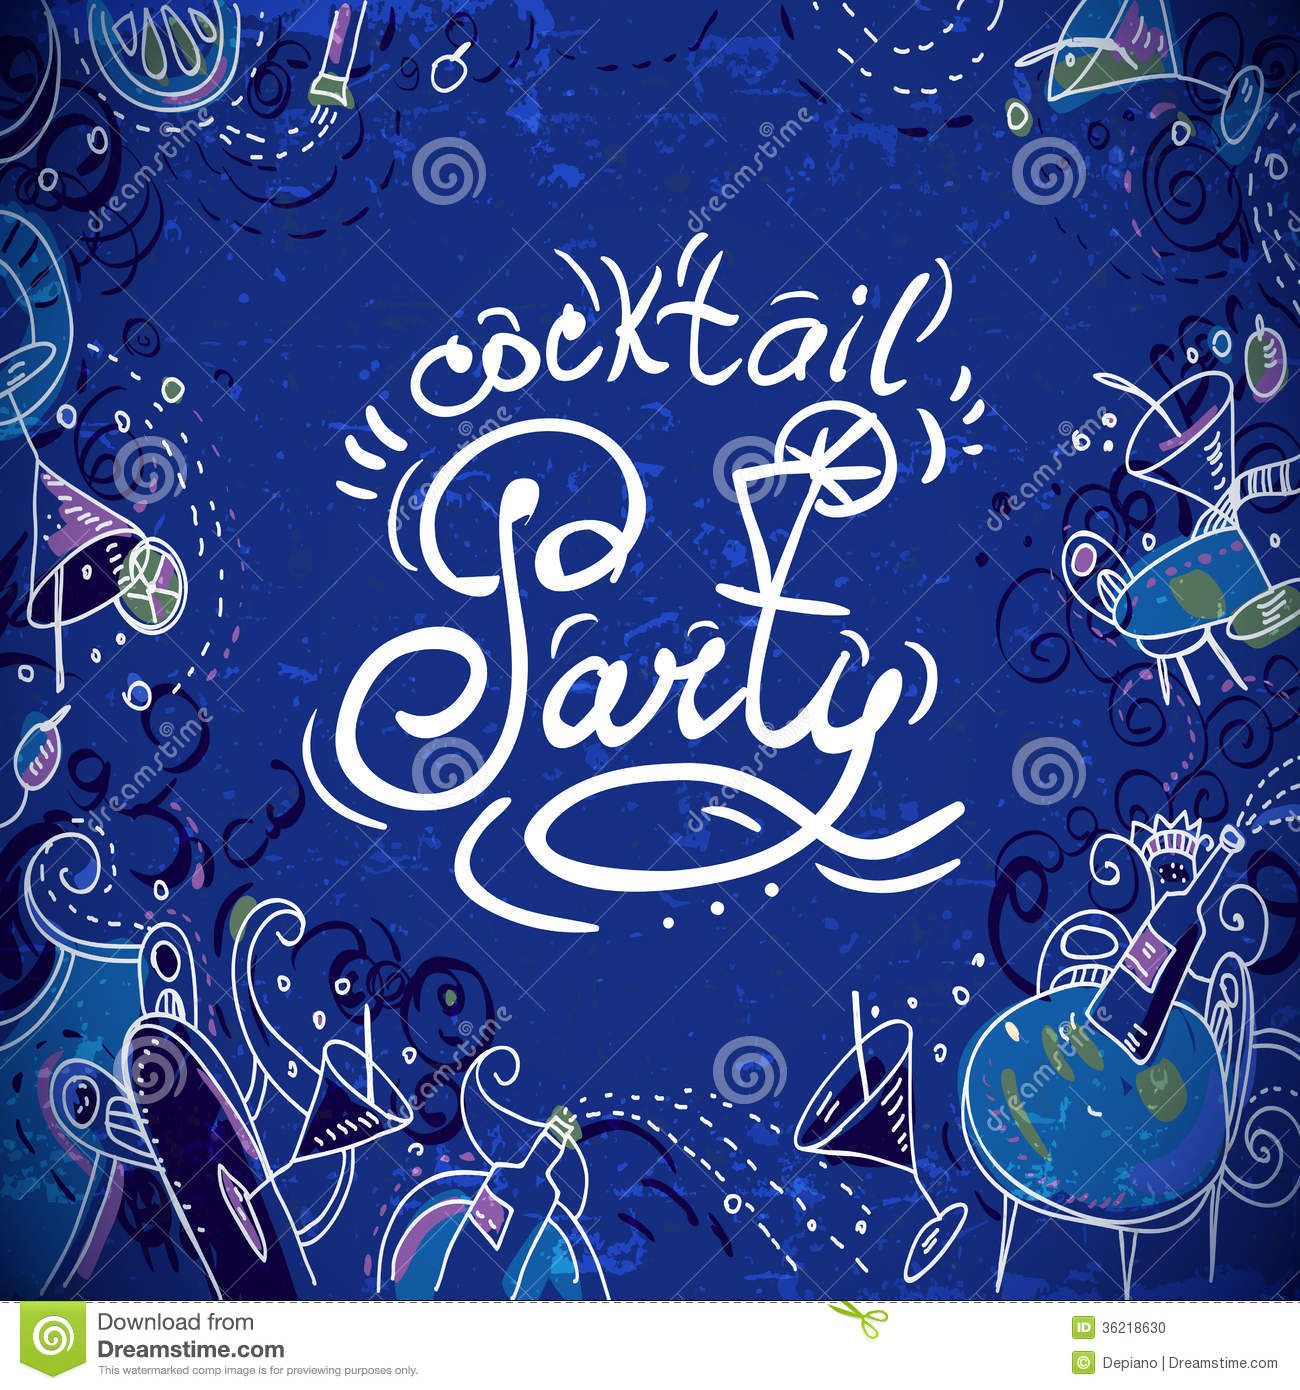 Invitation Card To Cocktail Party Photo Image 36218630 – Cocktail Party Invitation Cards